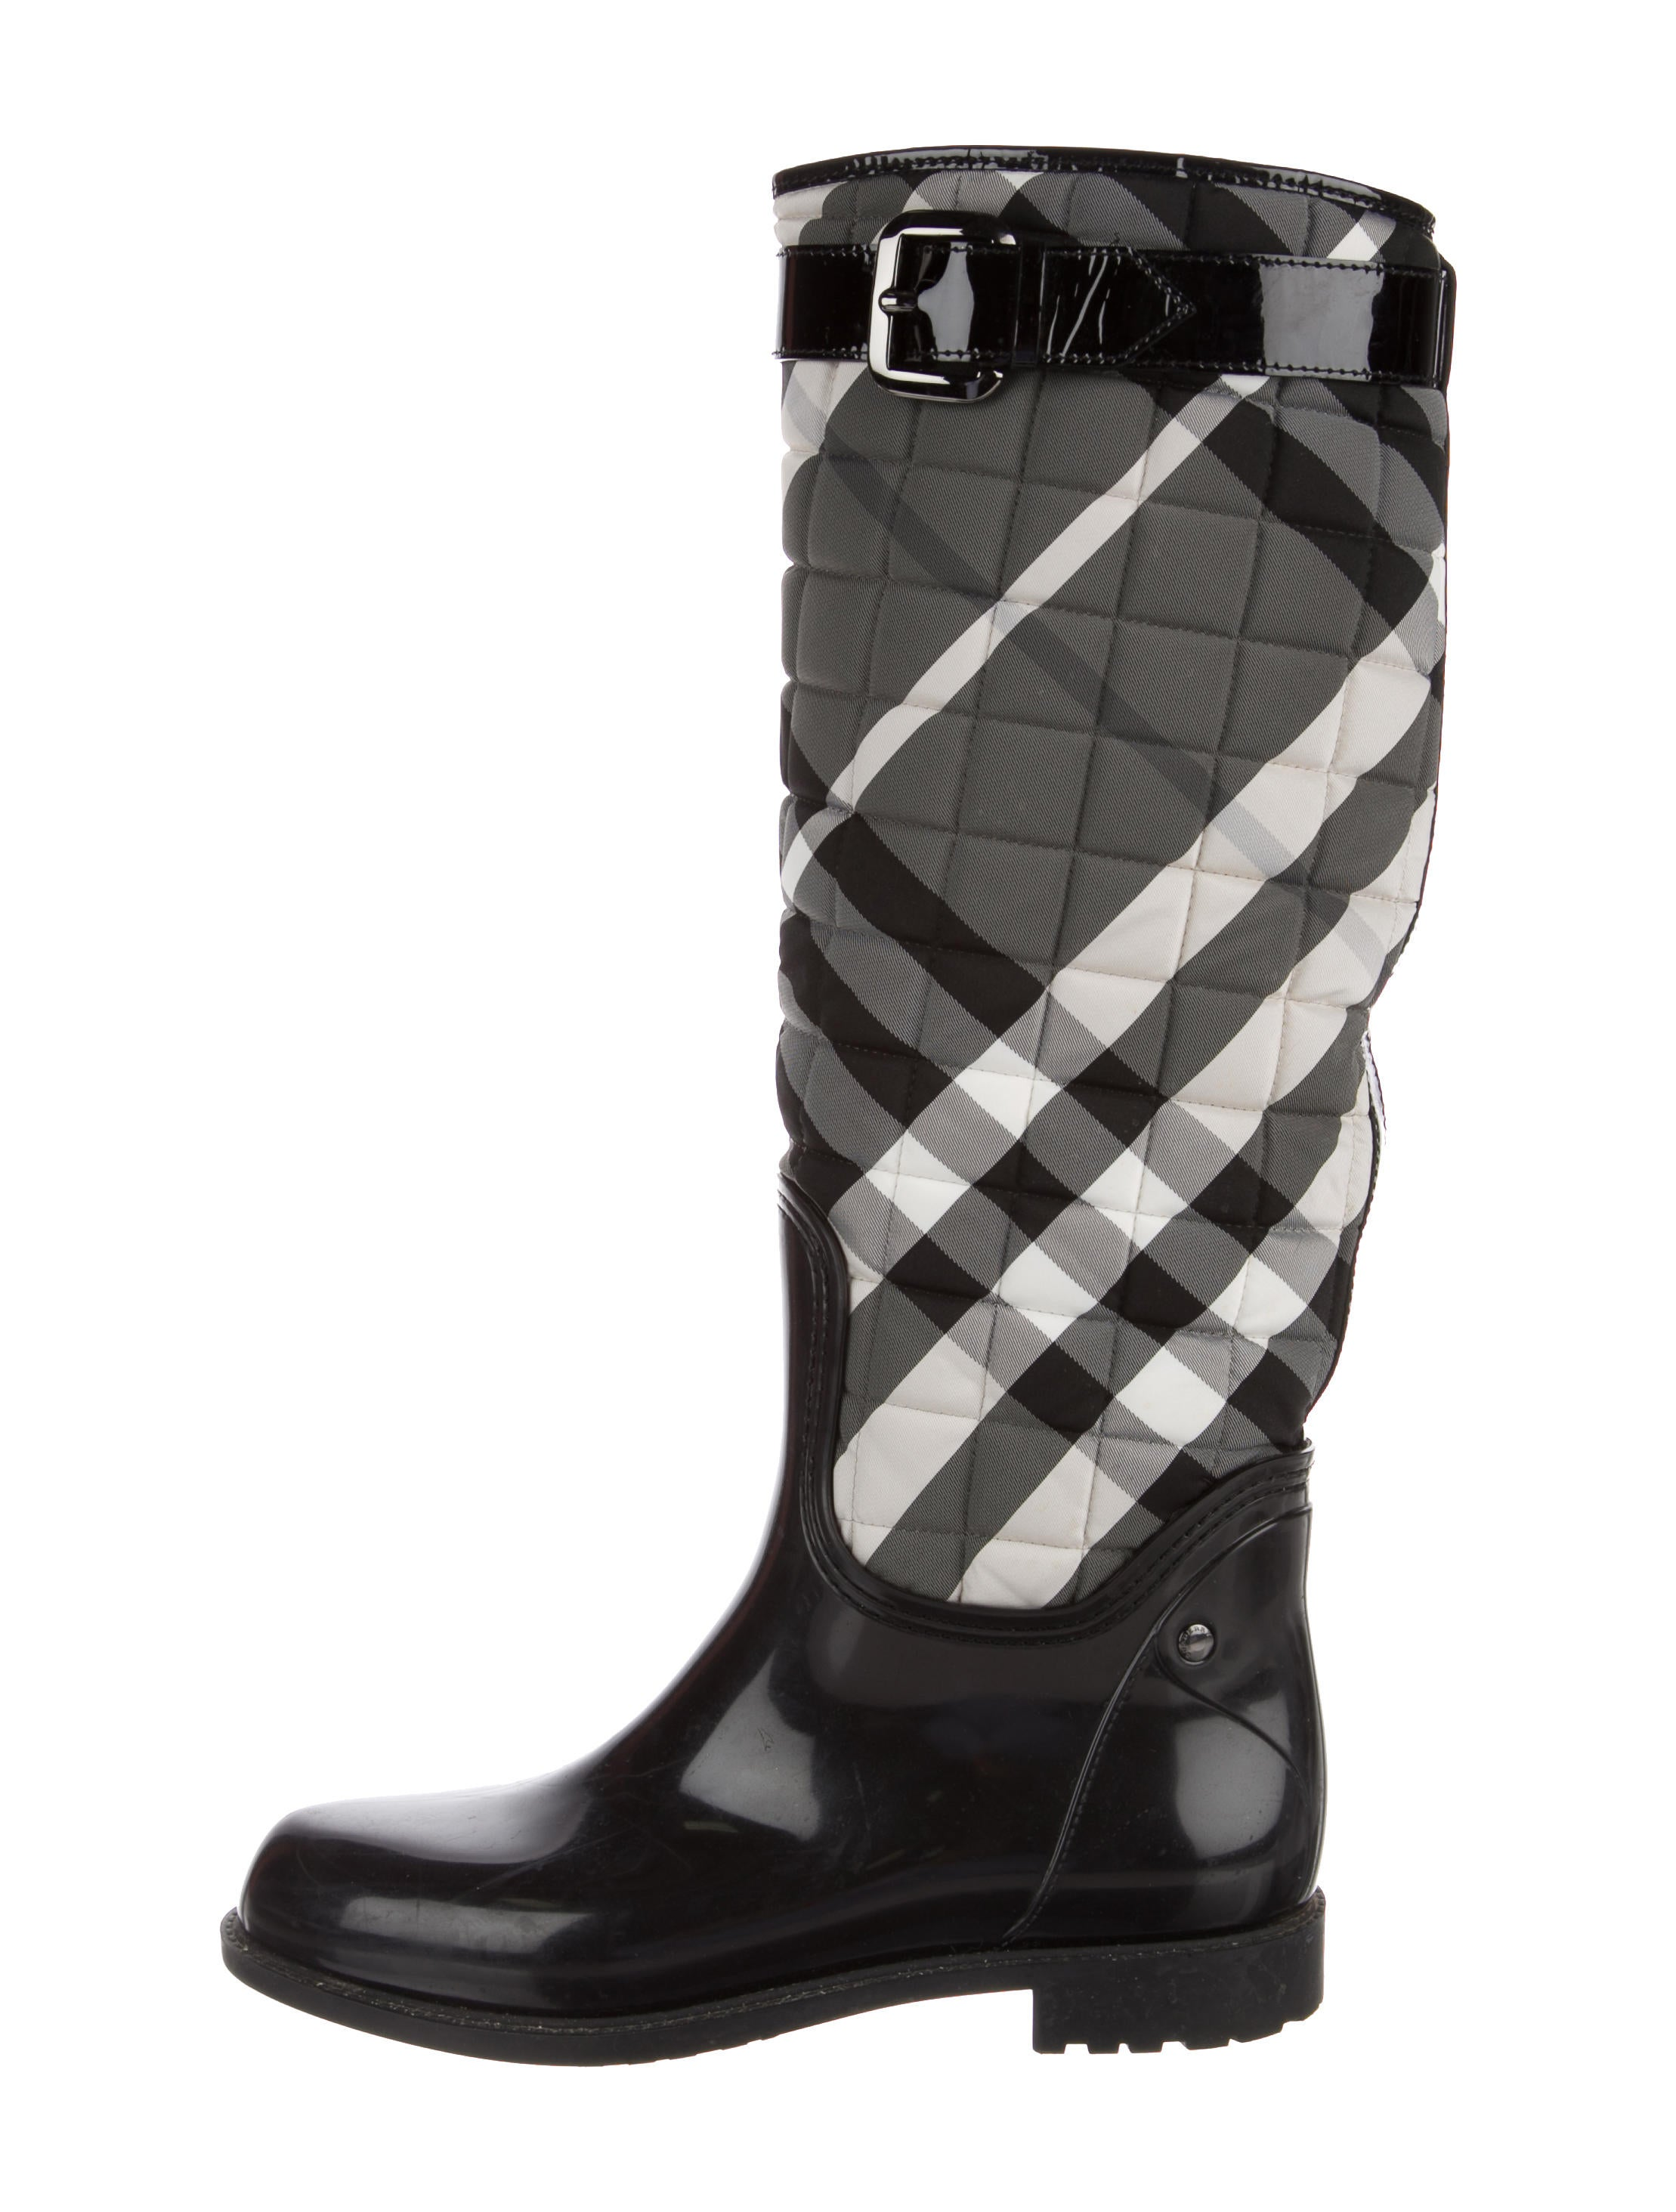 Burberry Quilted Beat Check Rain Boots - Shoes - BUR81974 | The ... : burberry quilted rain boots - Adamdwight.com